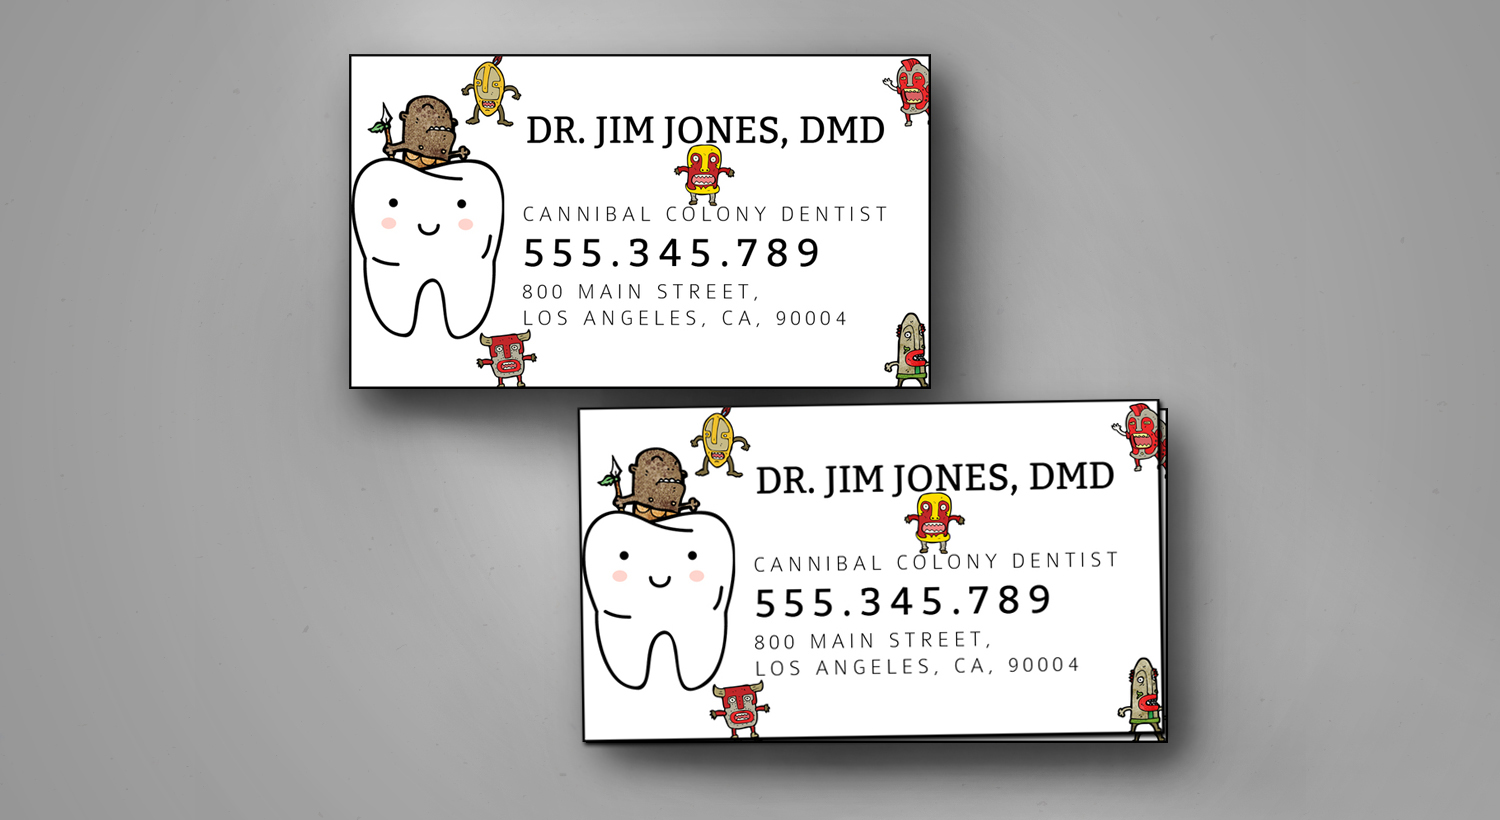 printed business cards for a cannibal colony dentist